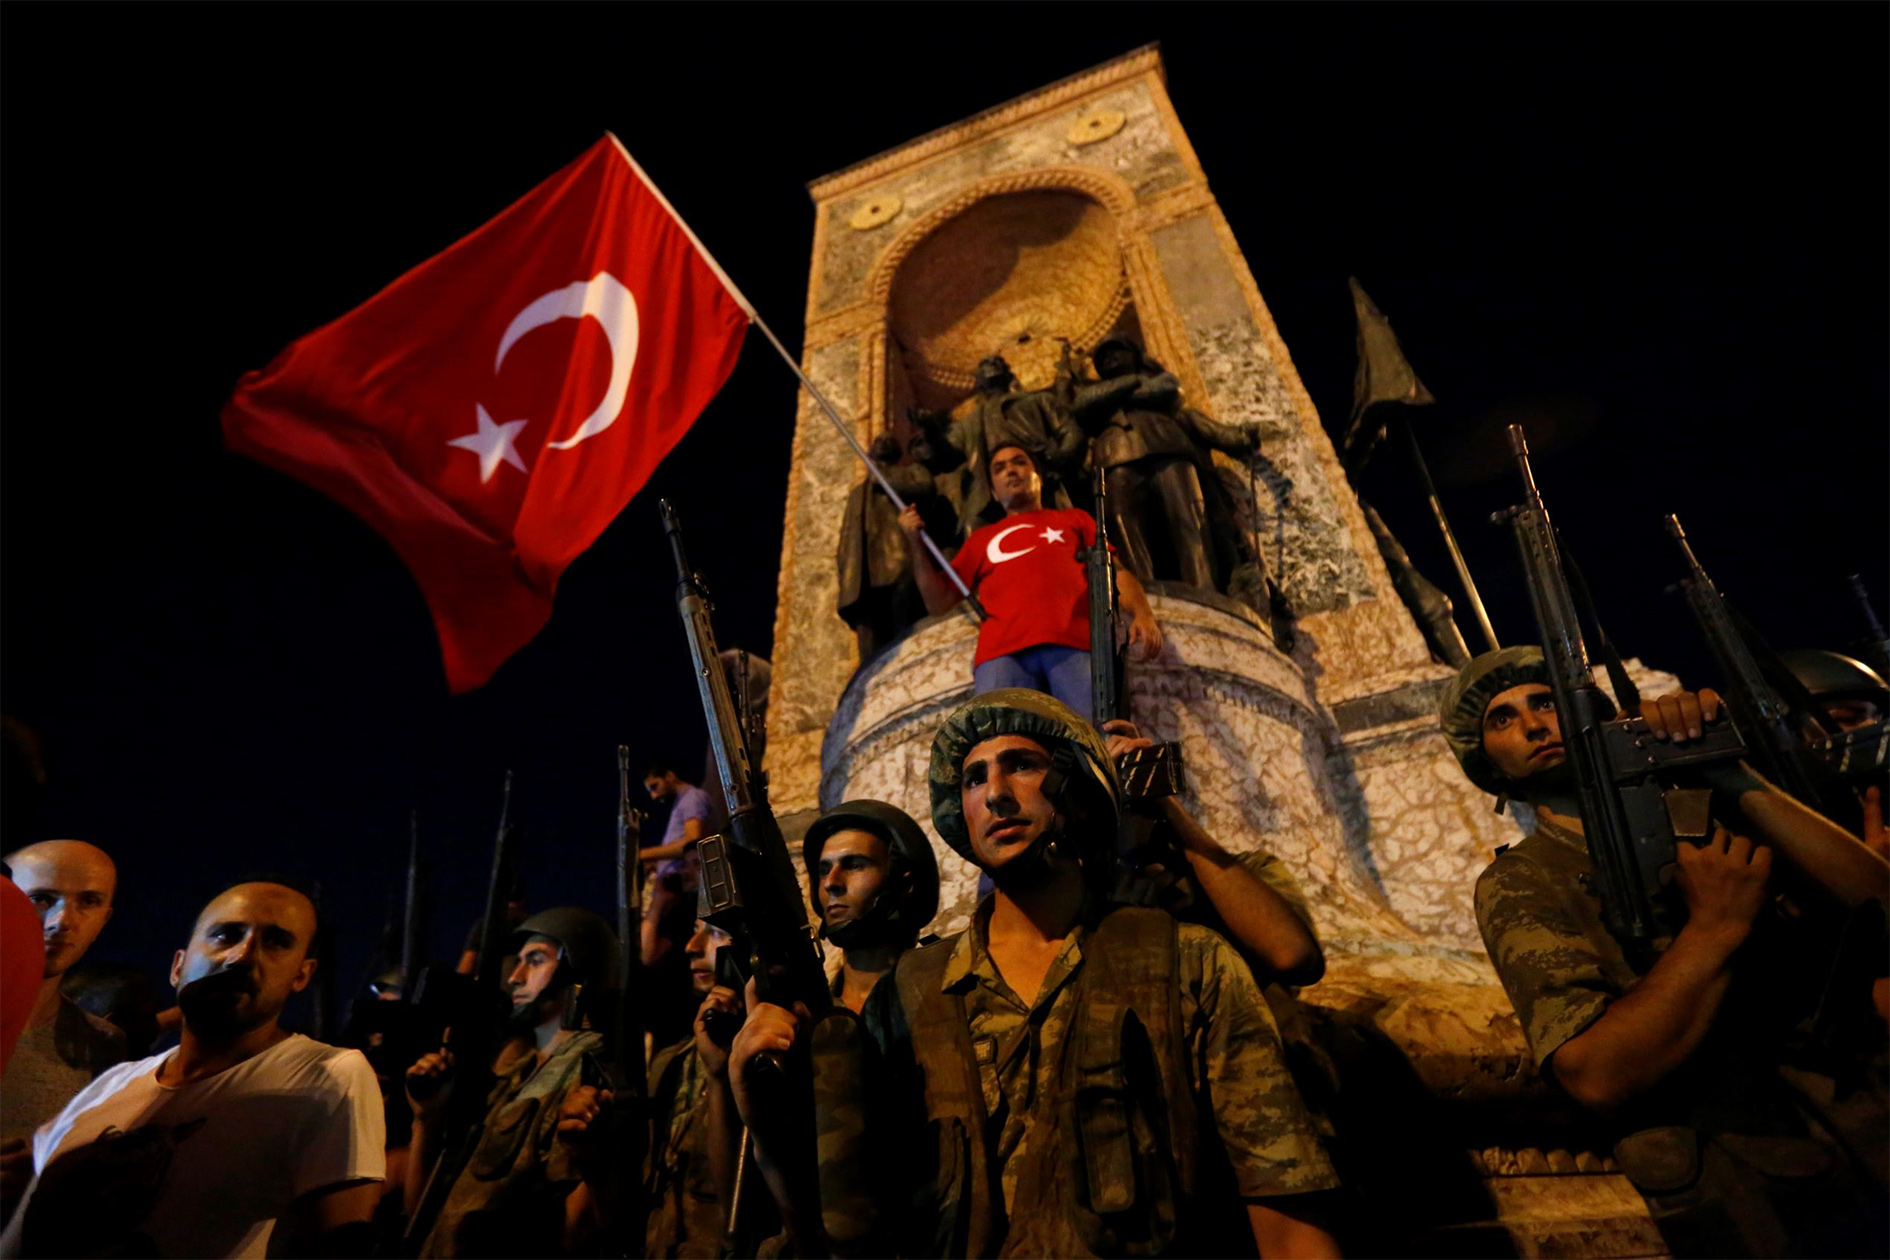 Turkish military stand guard near the Taksim Square as people wave with Turkish flags in Istanbul, Turkey, 16 July 2016.